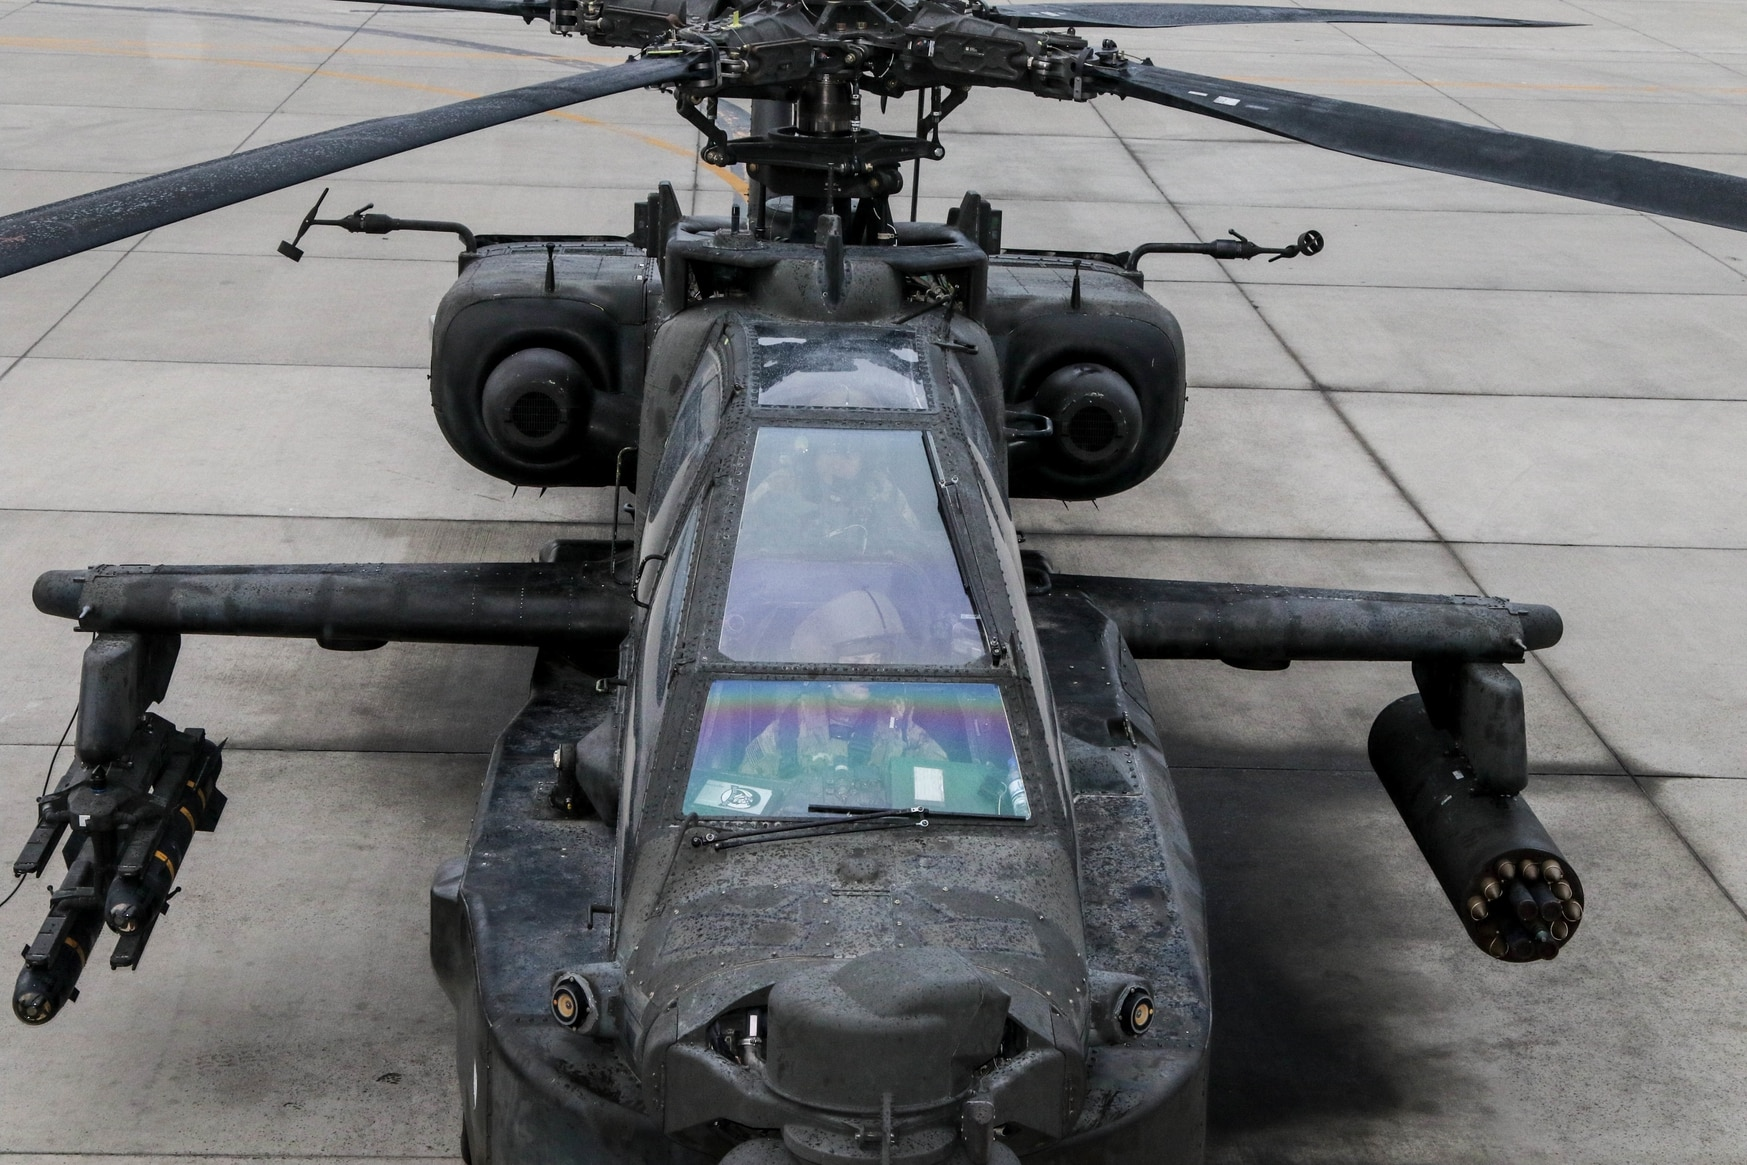 An AH-64 sits ready for take-off as the Apache pilots conduct their final pre-flight inspections inside the aircraft in Afghanistan. (Capt. Roxana Thompson/Army)